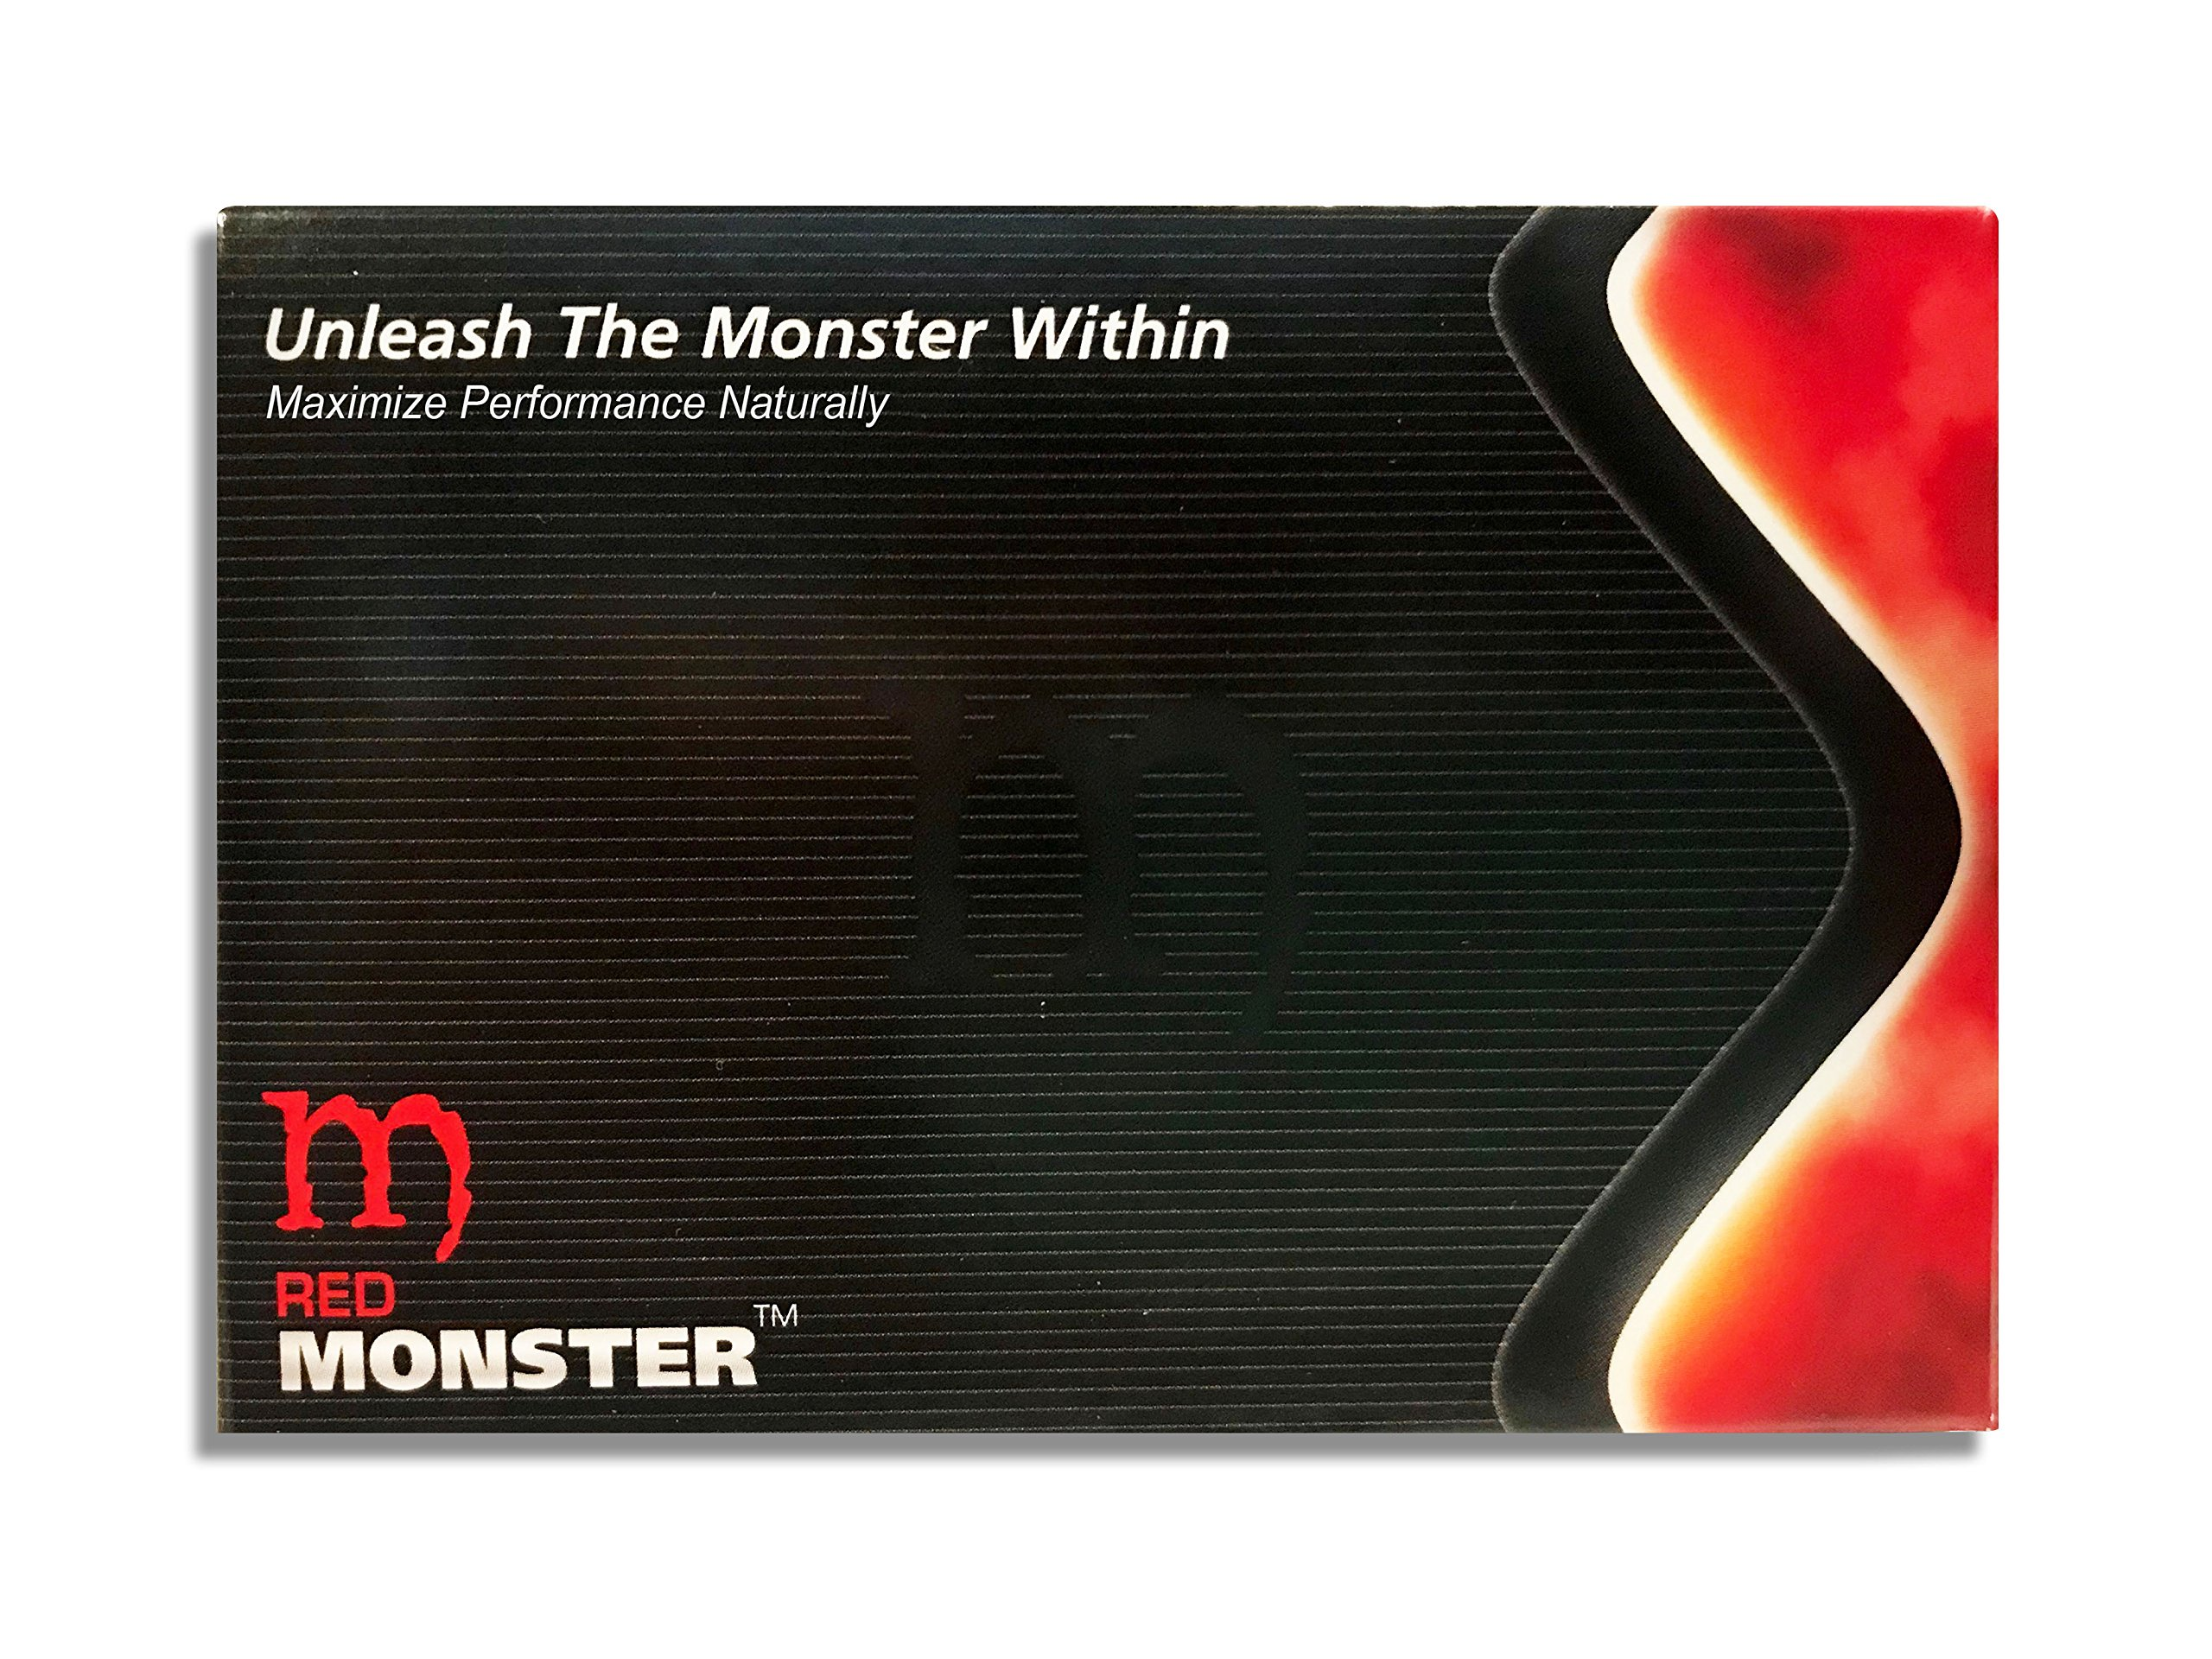 Red Monster (10 Caps) All Natural Male Energy by RSM